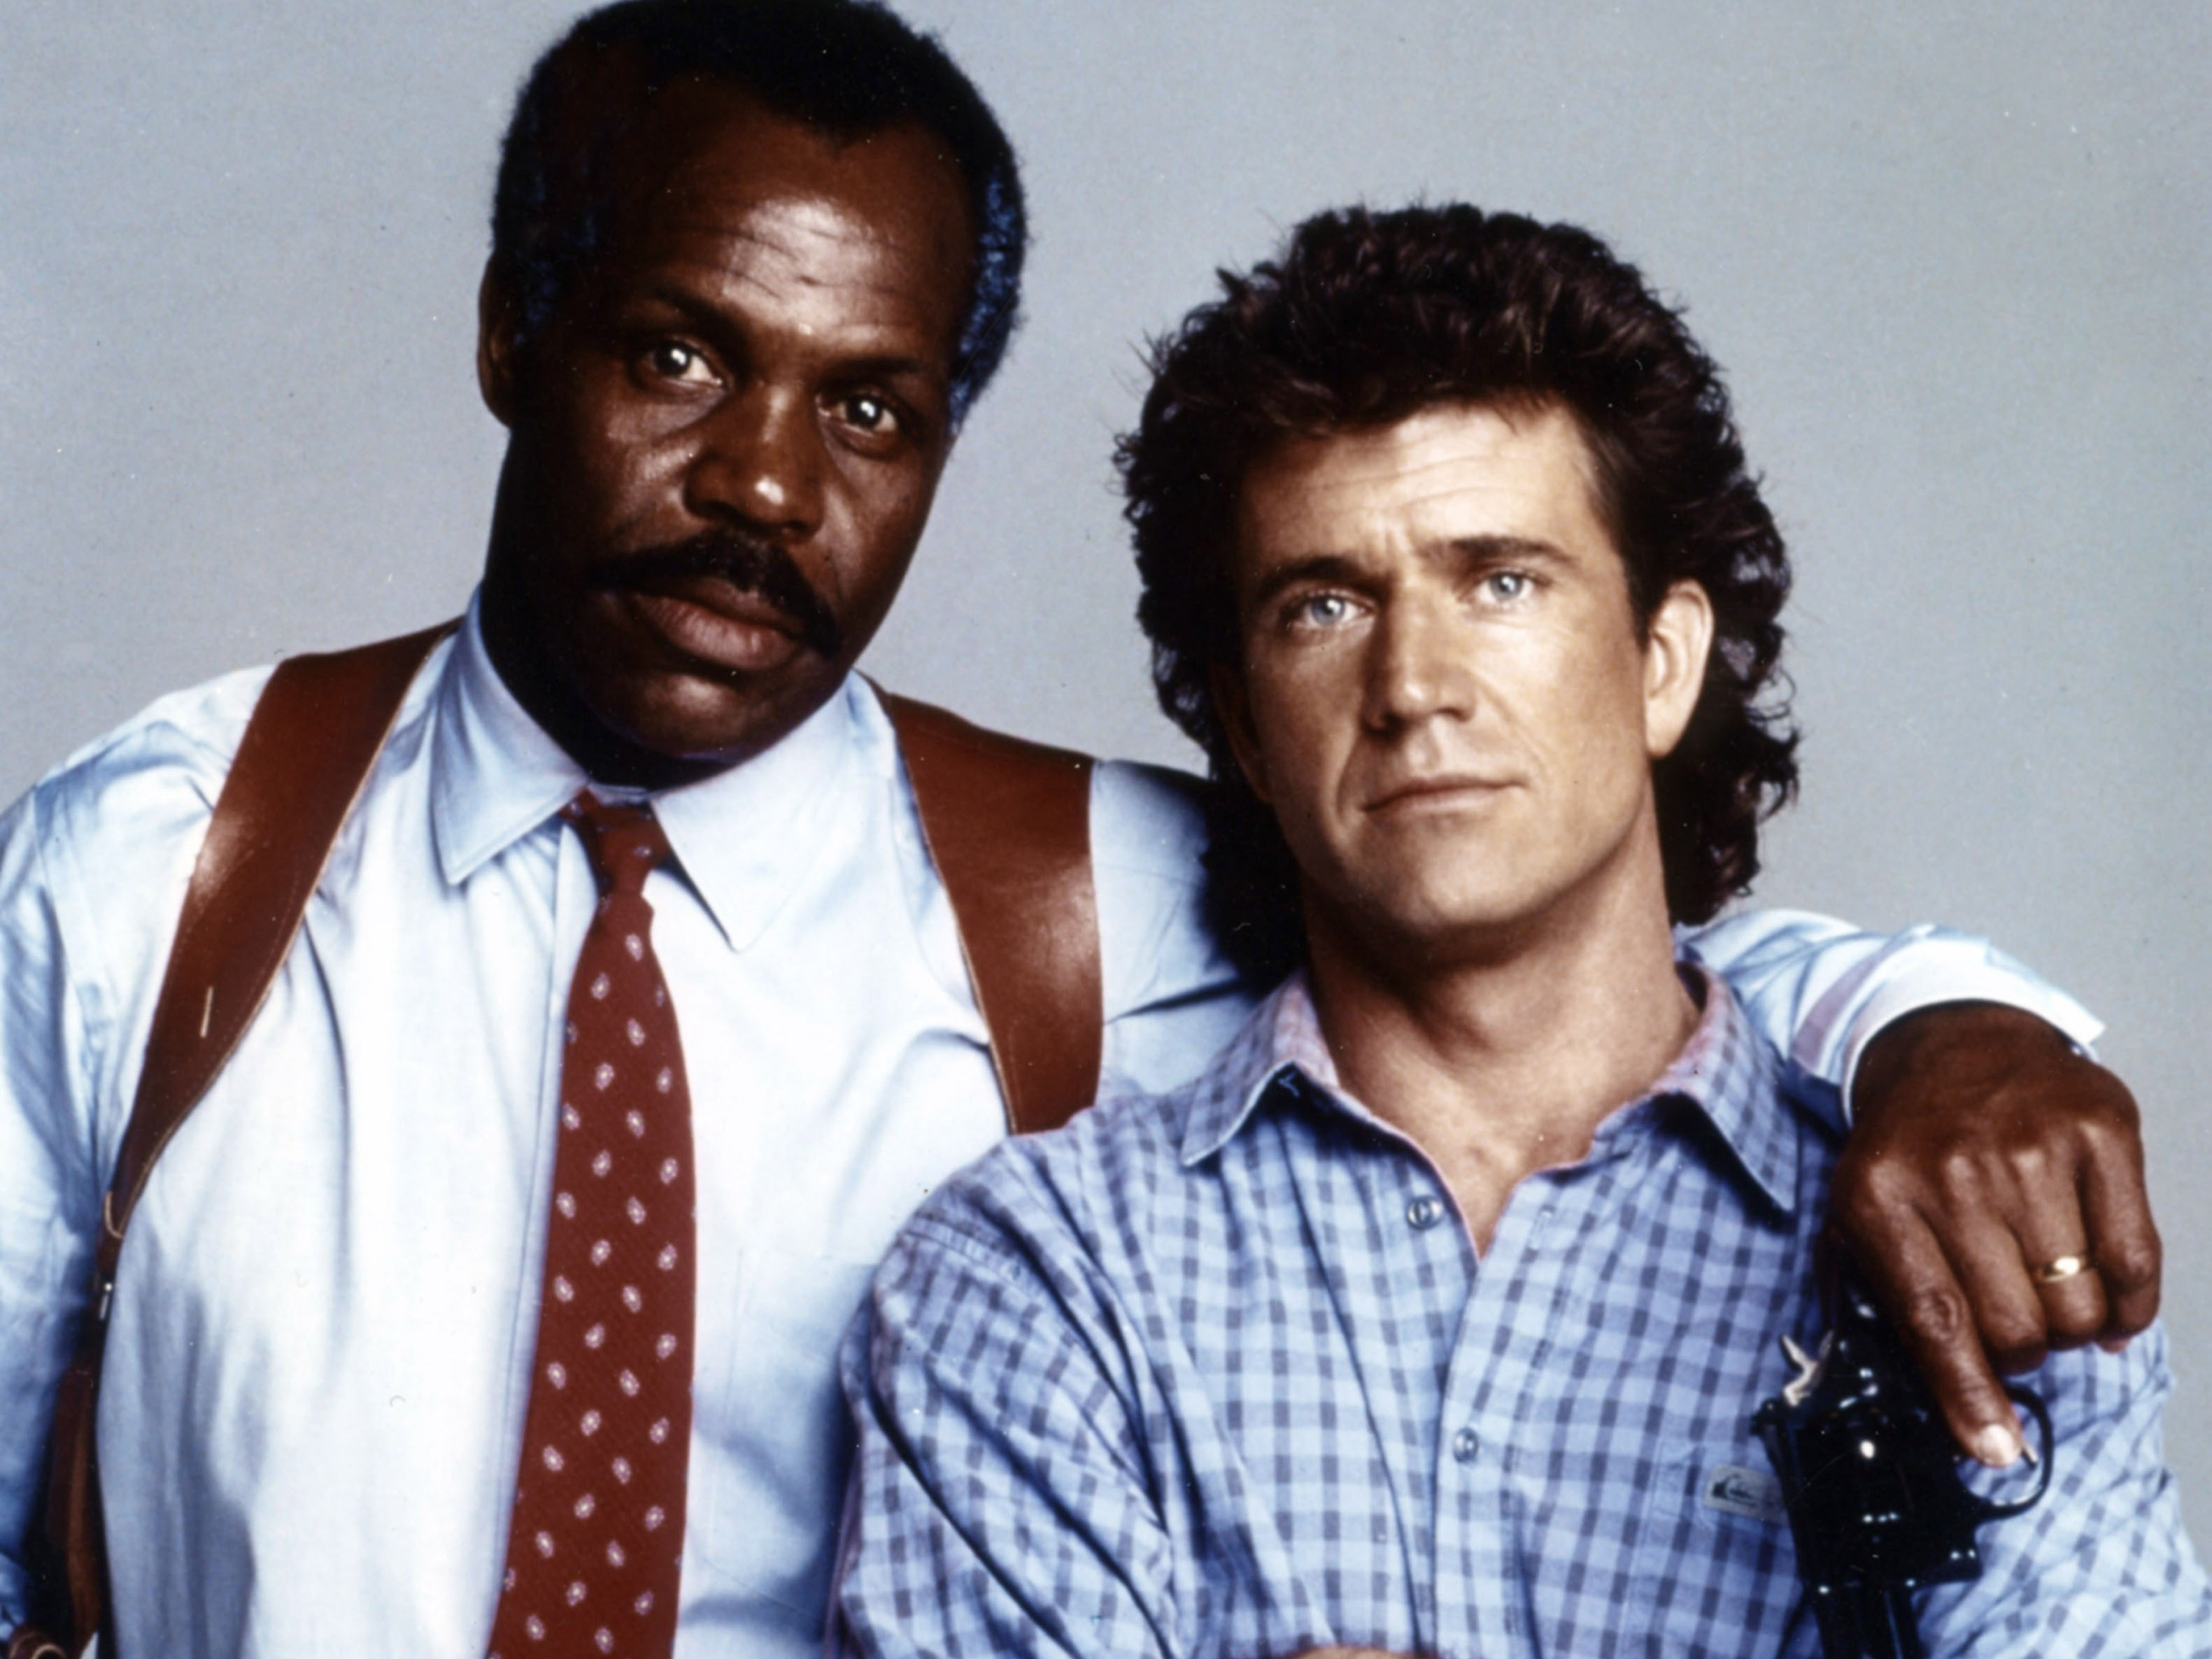 Riggs and Murtaugh, Lethal Weapon (1987)